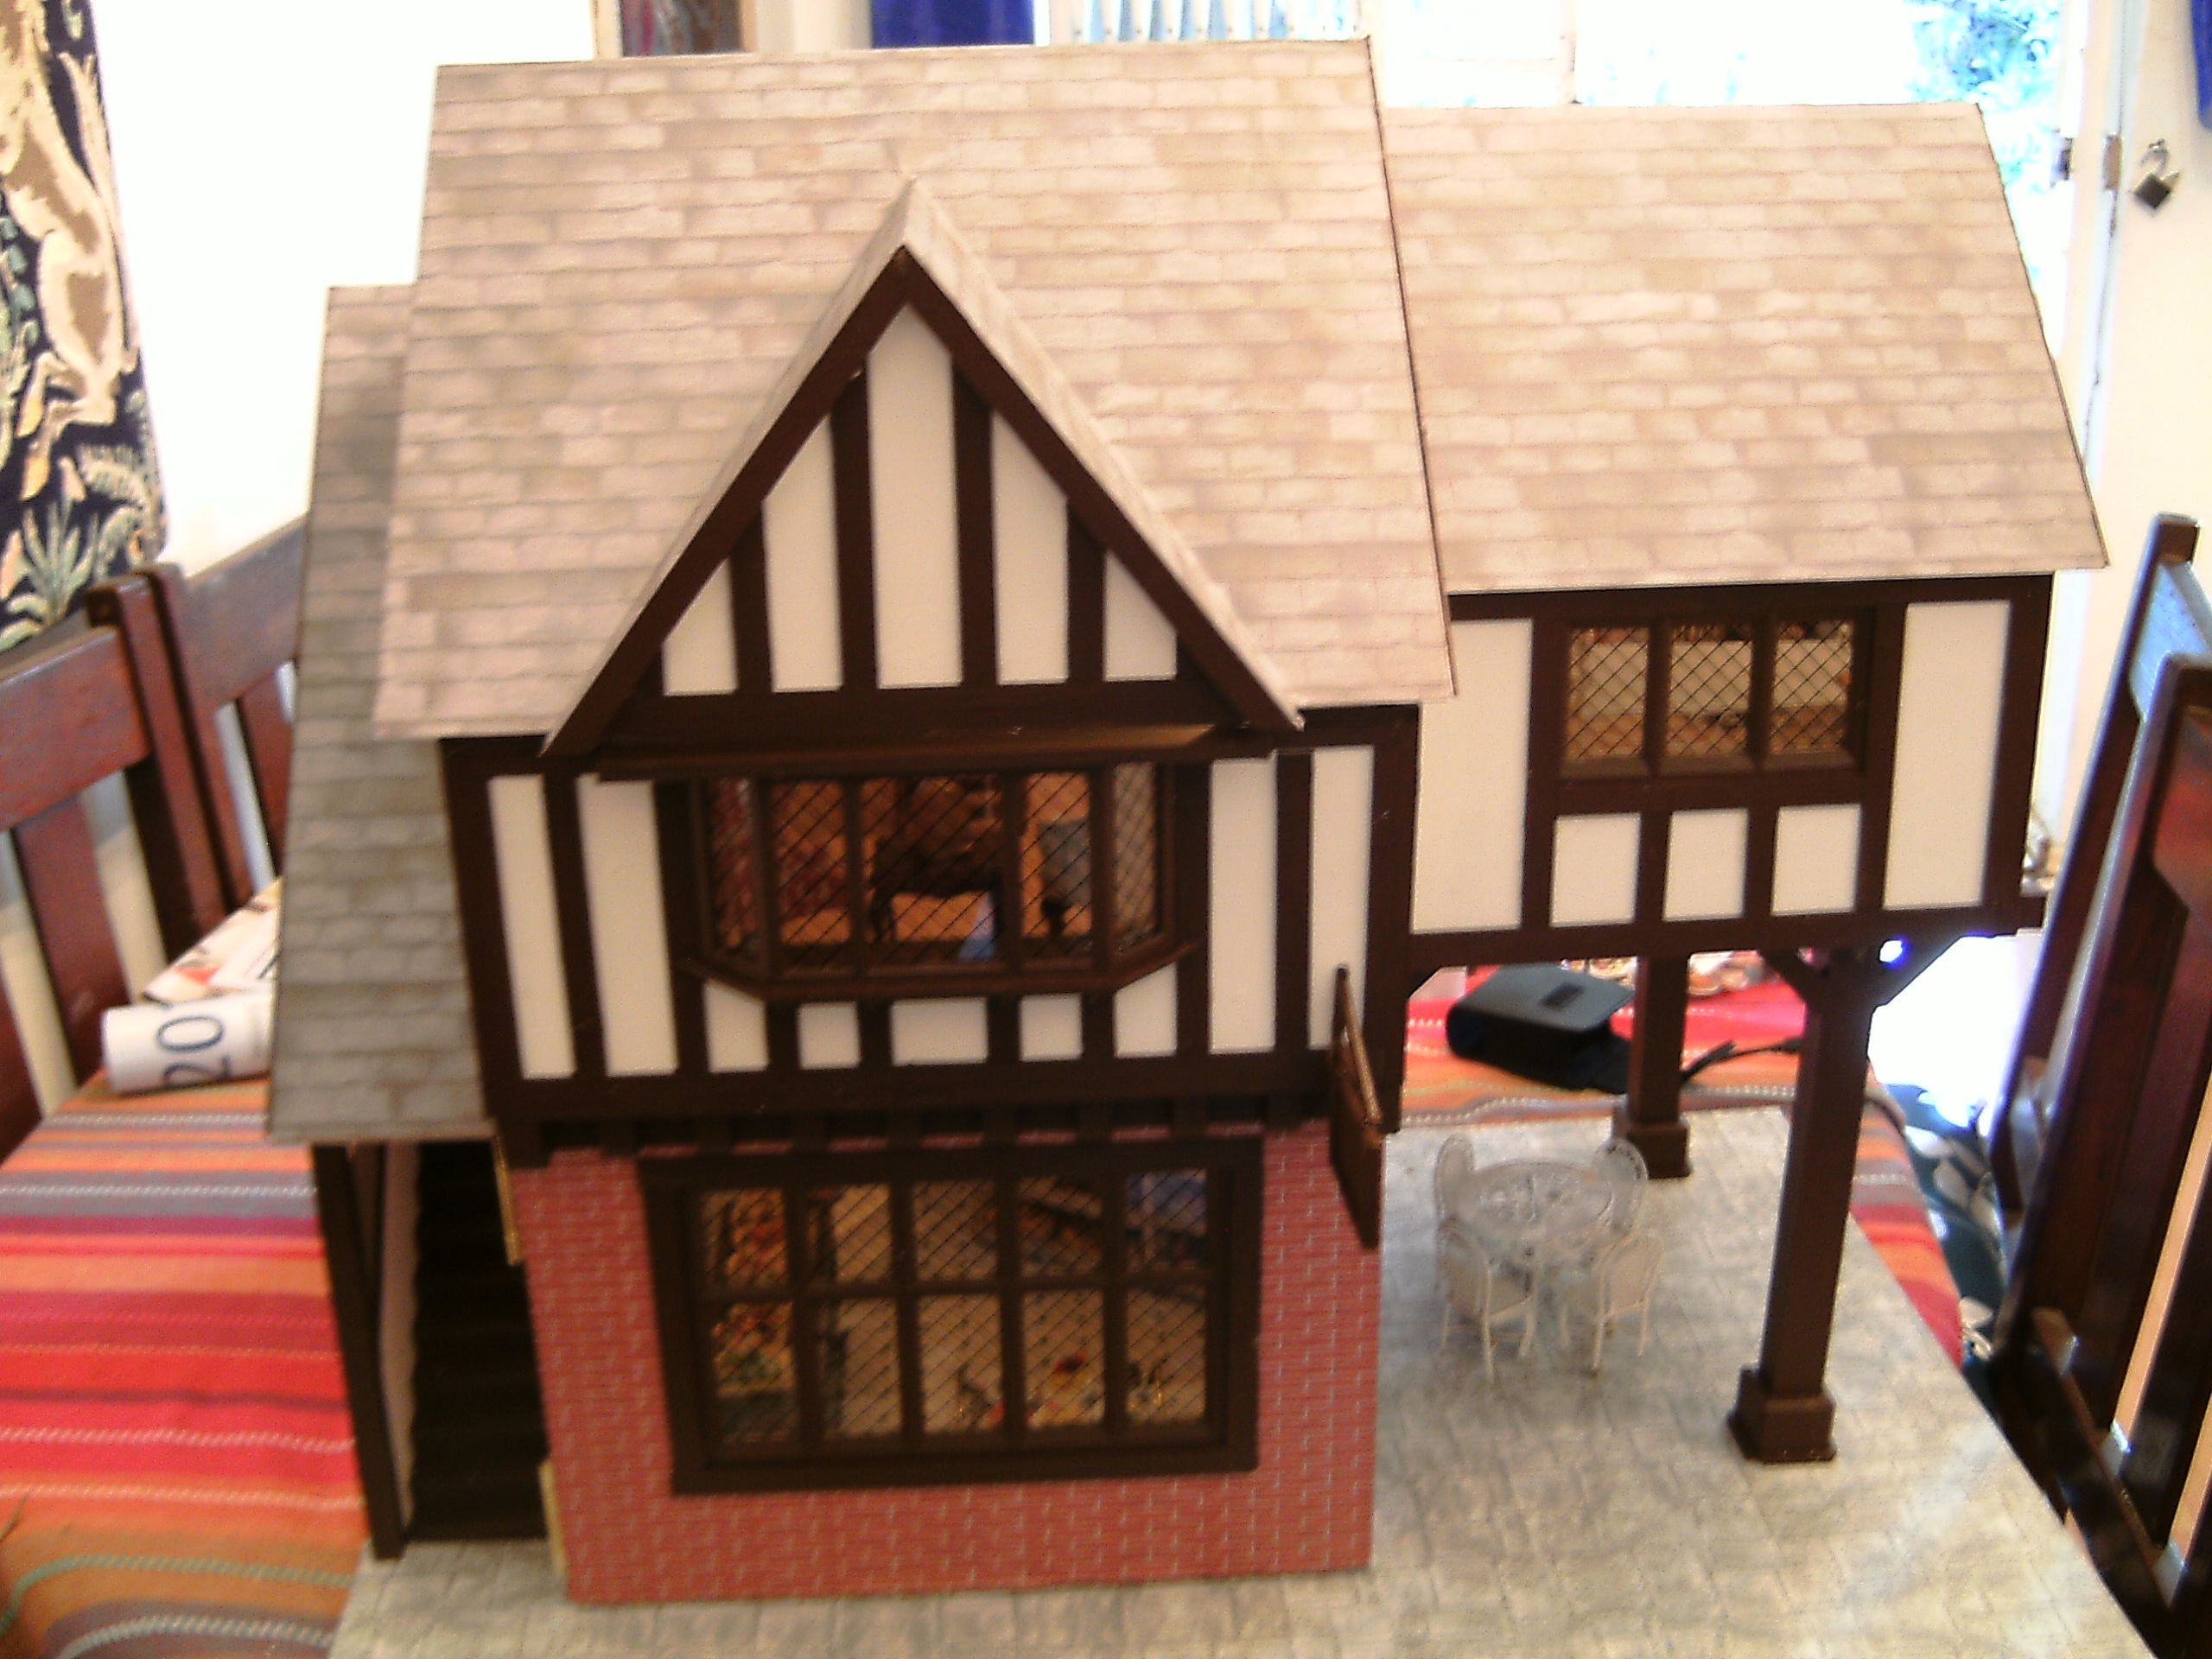 Stratford bakery (With images) House, Gazebo, Outdoor